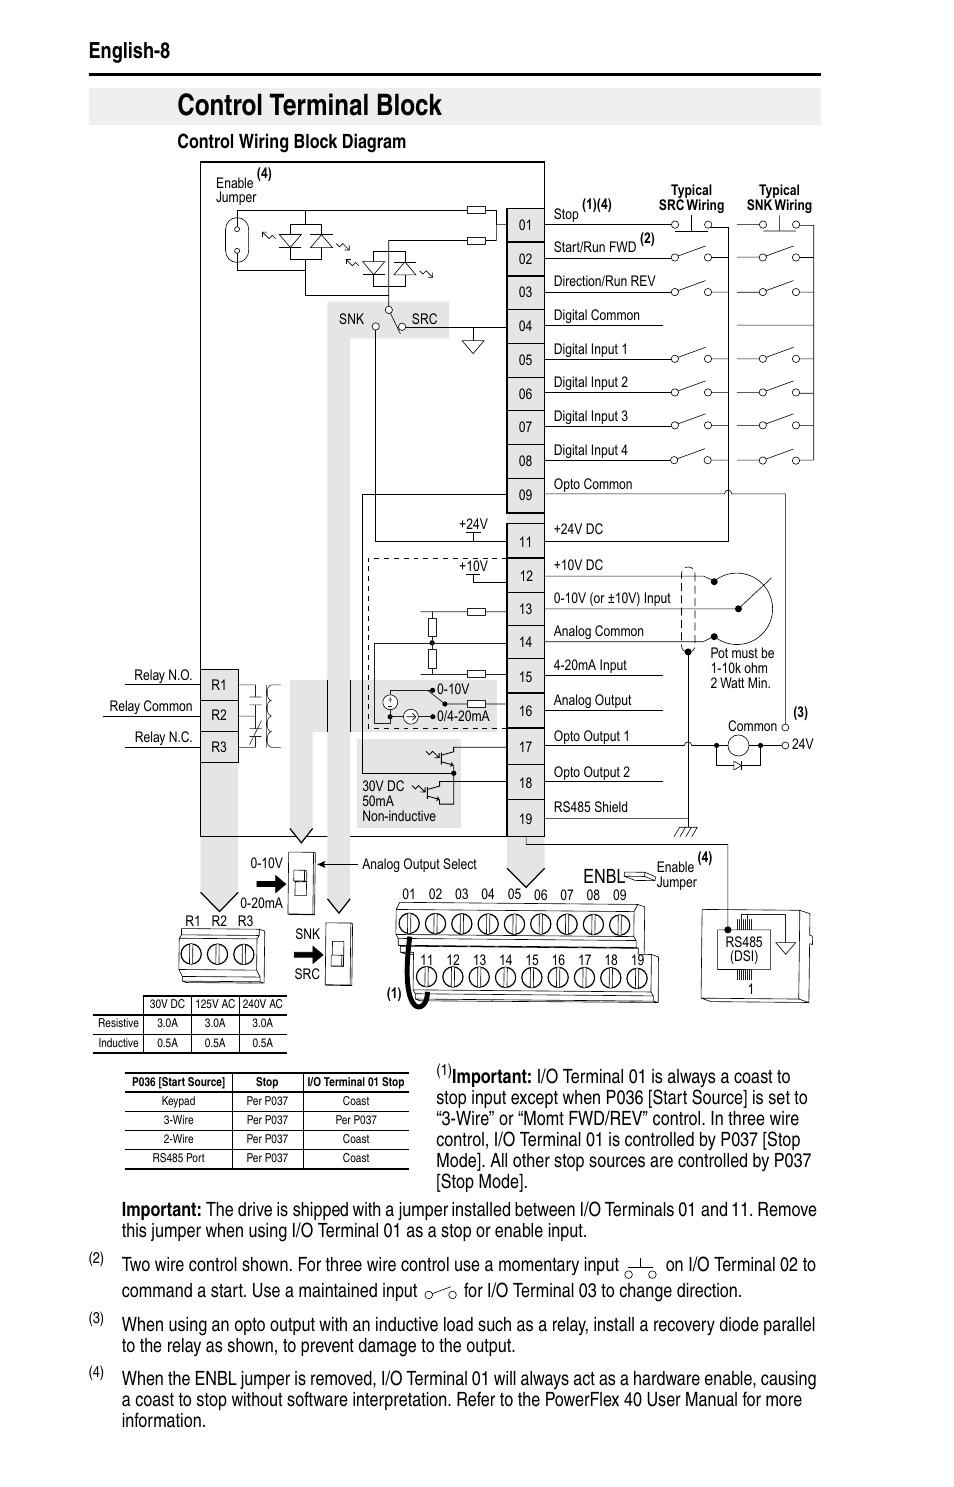 Powerflex 753 Ac Drive Wiring Diagram Diagrams Rockwell 700 Manual Pdf Allen Bradley 755